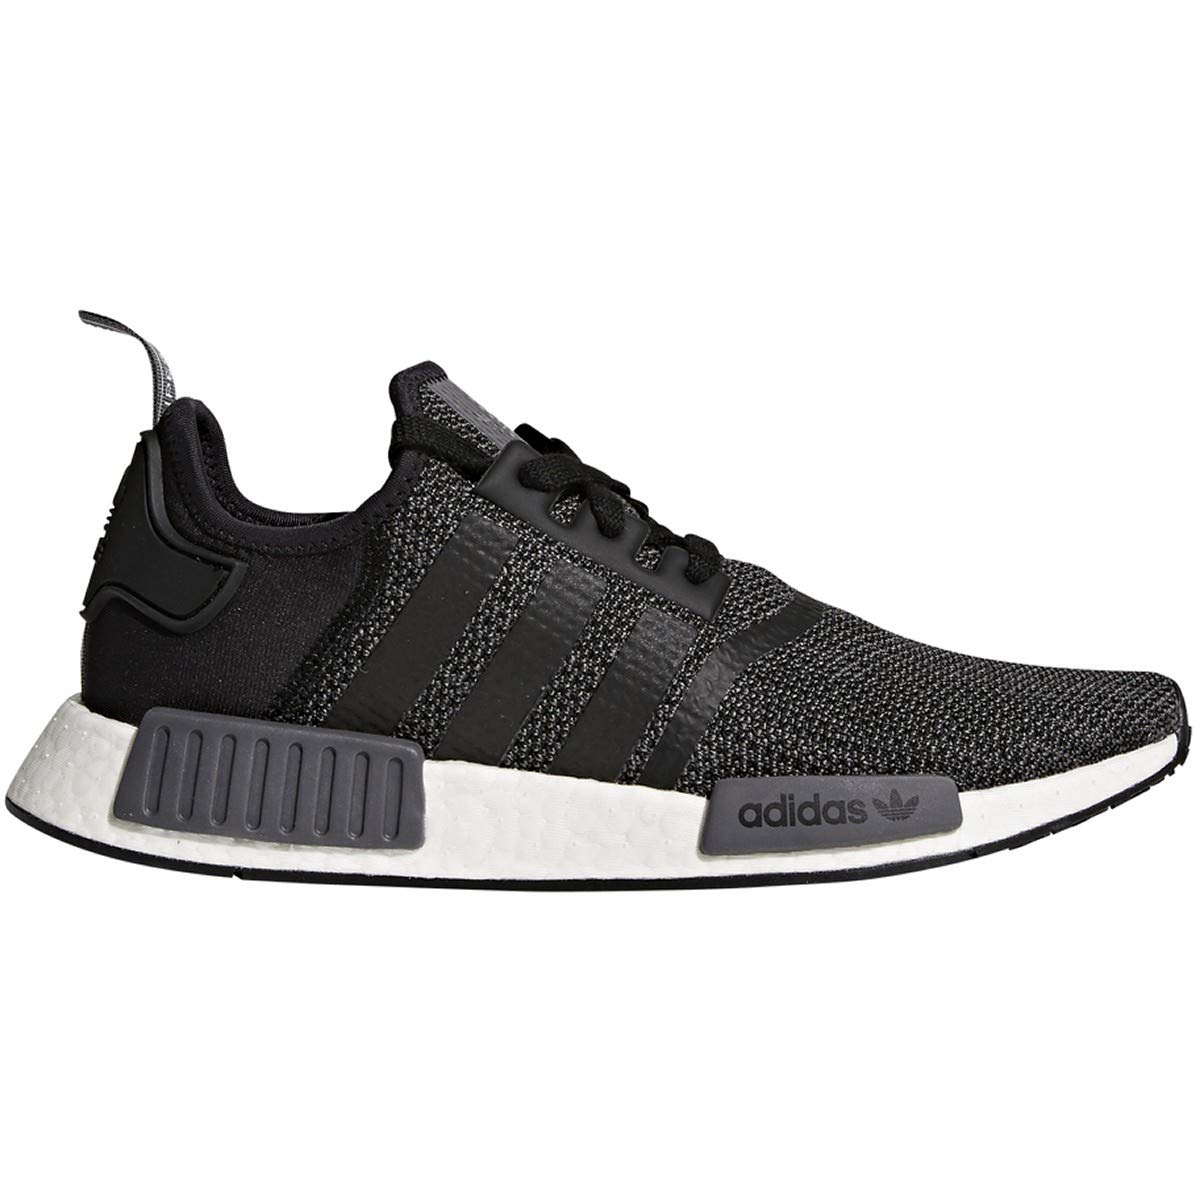 adidas NMD R1 Shoes Black B79758